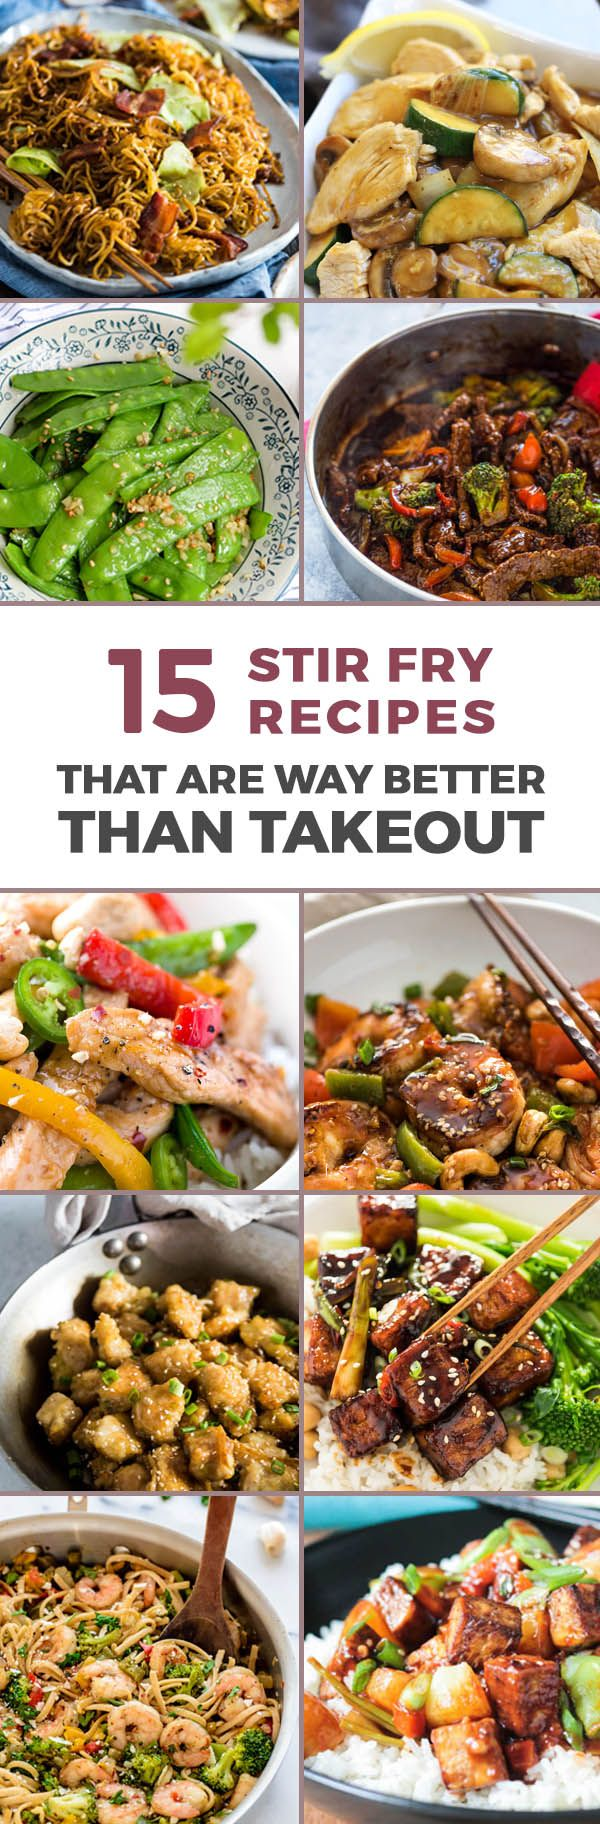 15 Stir Fry Recipes that are better than take out